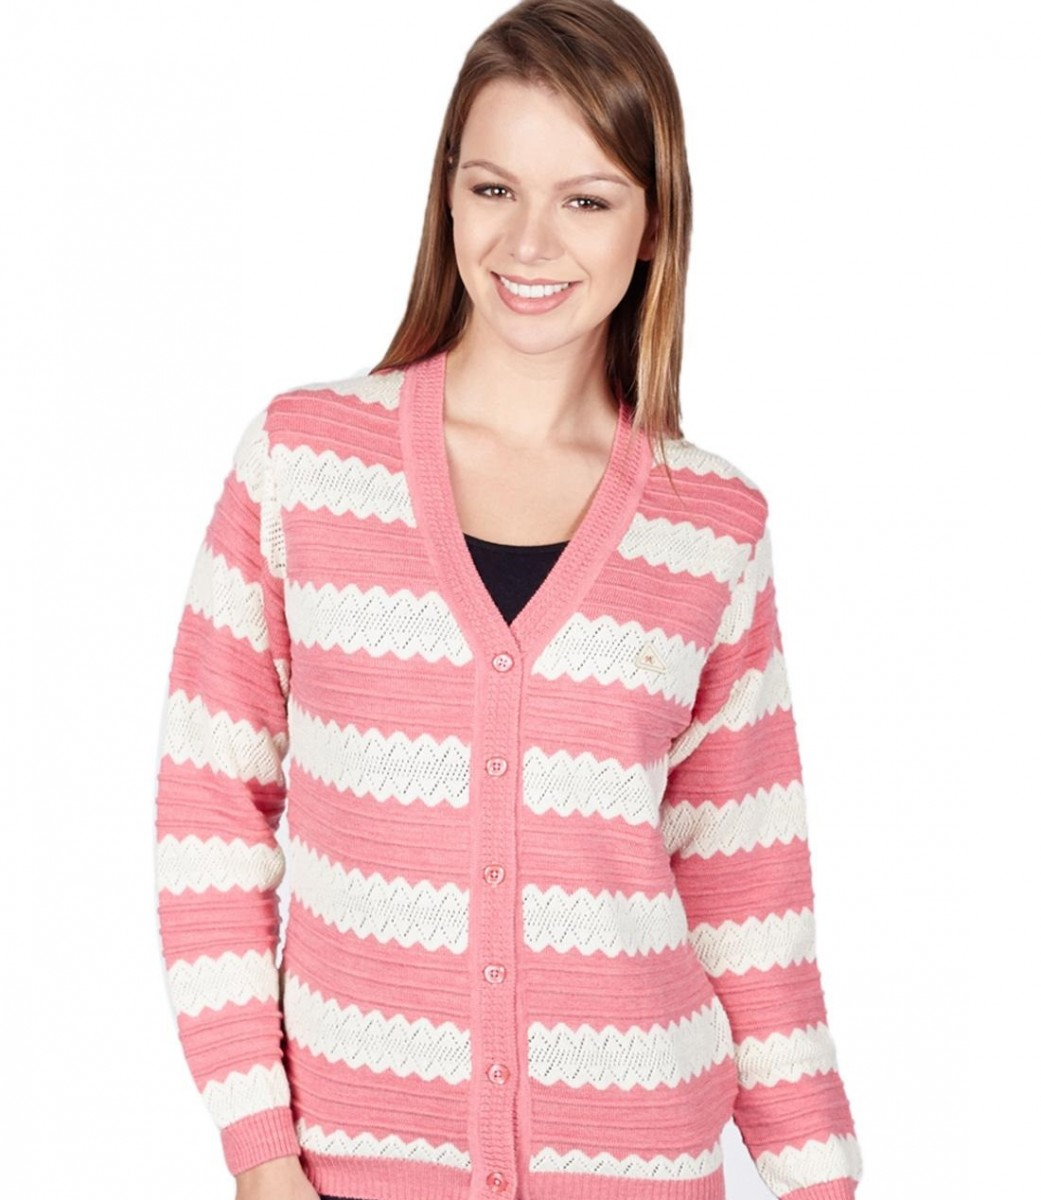 Monte Carlo beautiful pink and white sweater with buttons